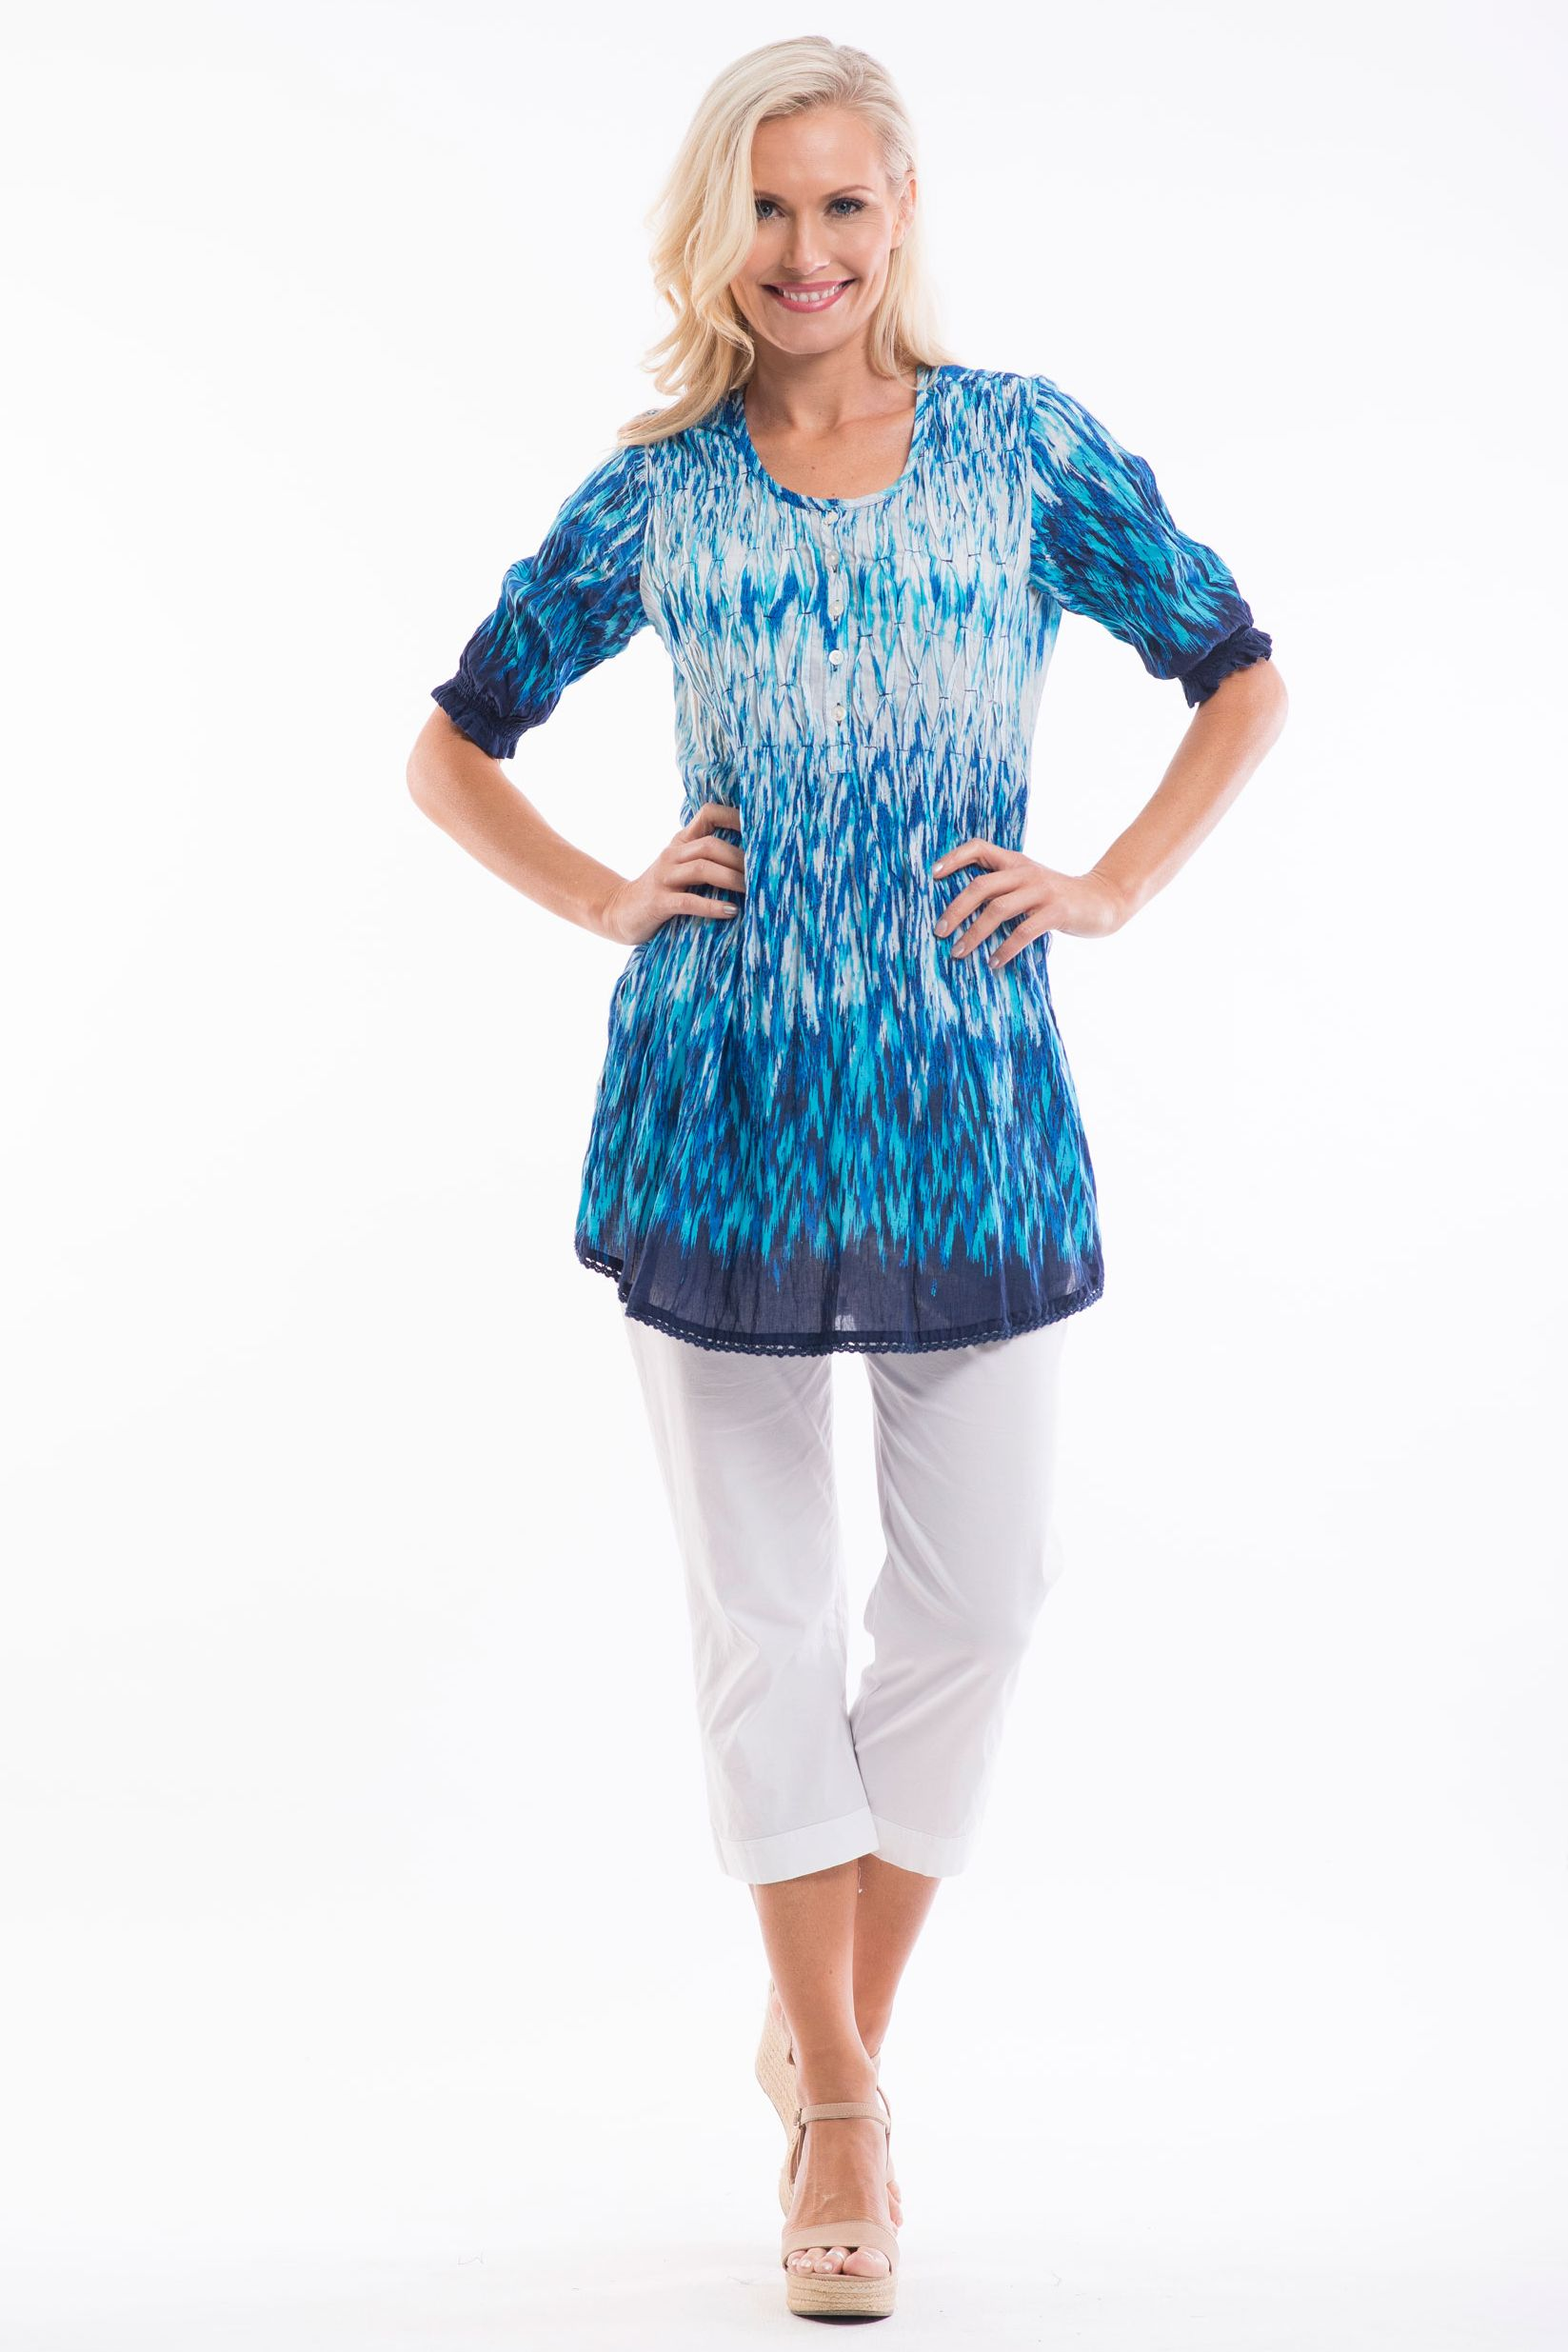 Blue White Ice Tunic Top | I Love Tunics | Tunic Tops | Tunic Dresses | Women's Tops | Plus Size Australia | Mature Fashion